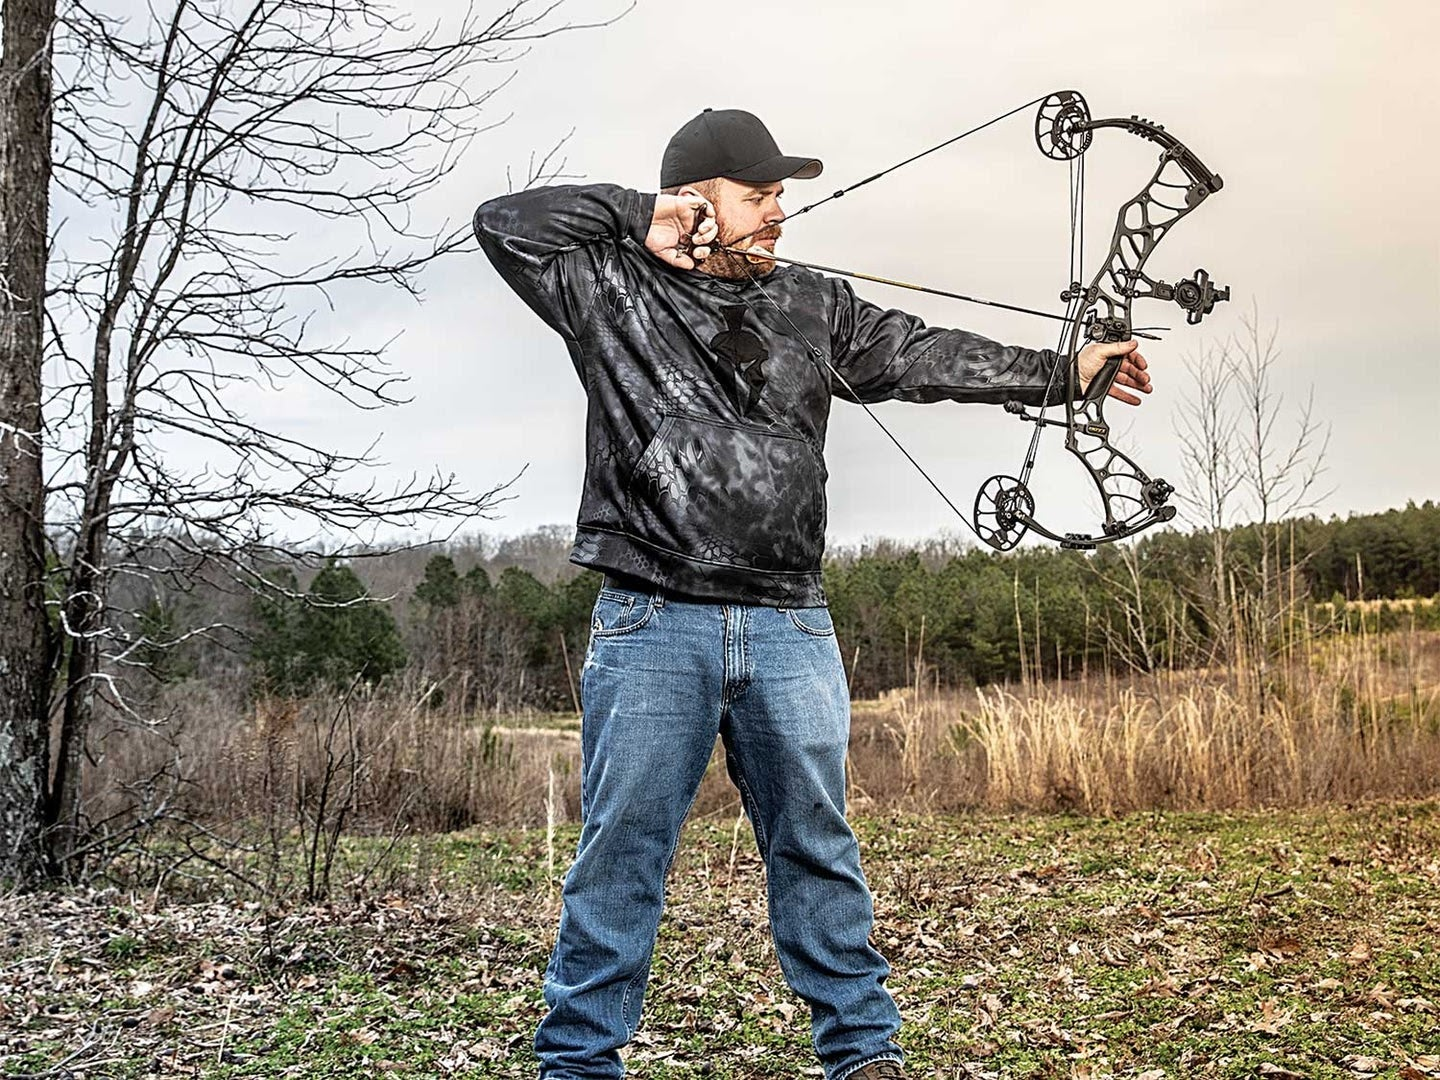 Guy at full draw with a compound bow